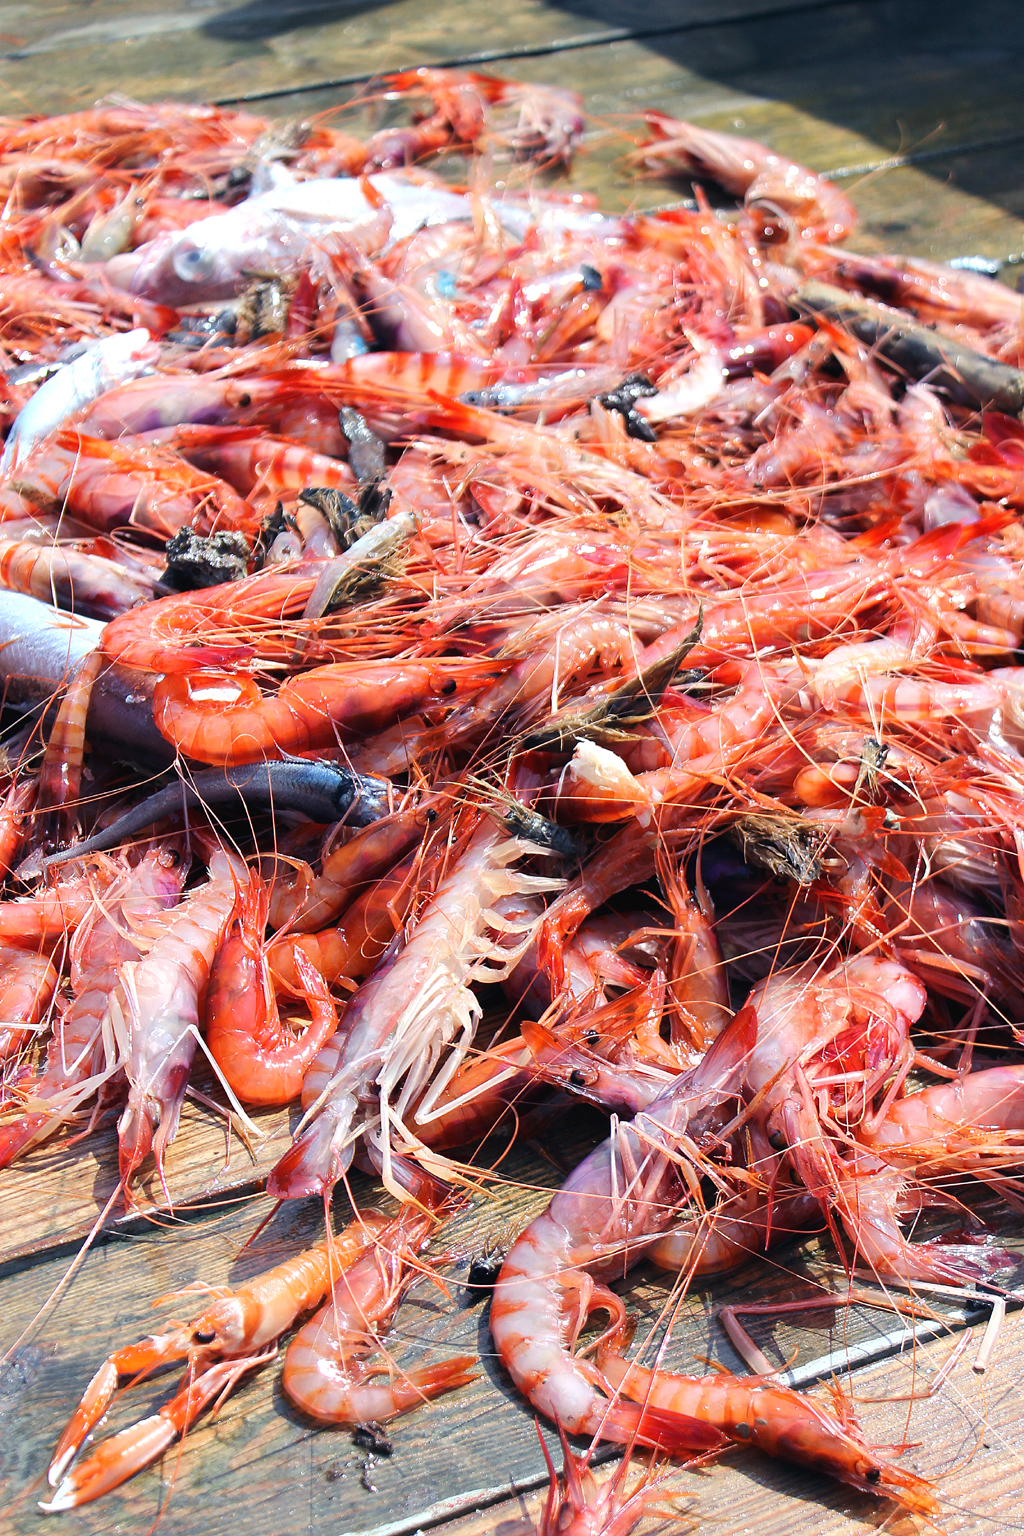 Gamberoni or Prawns from the Mediterranean Sea